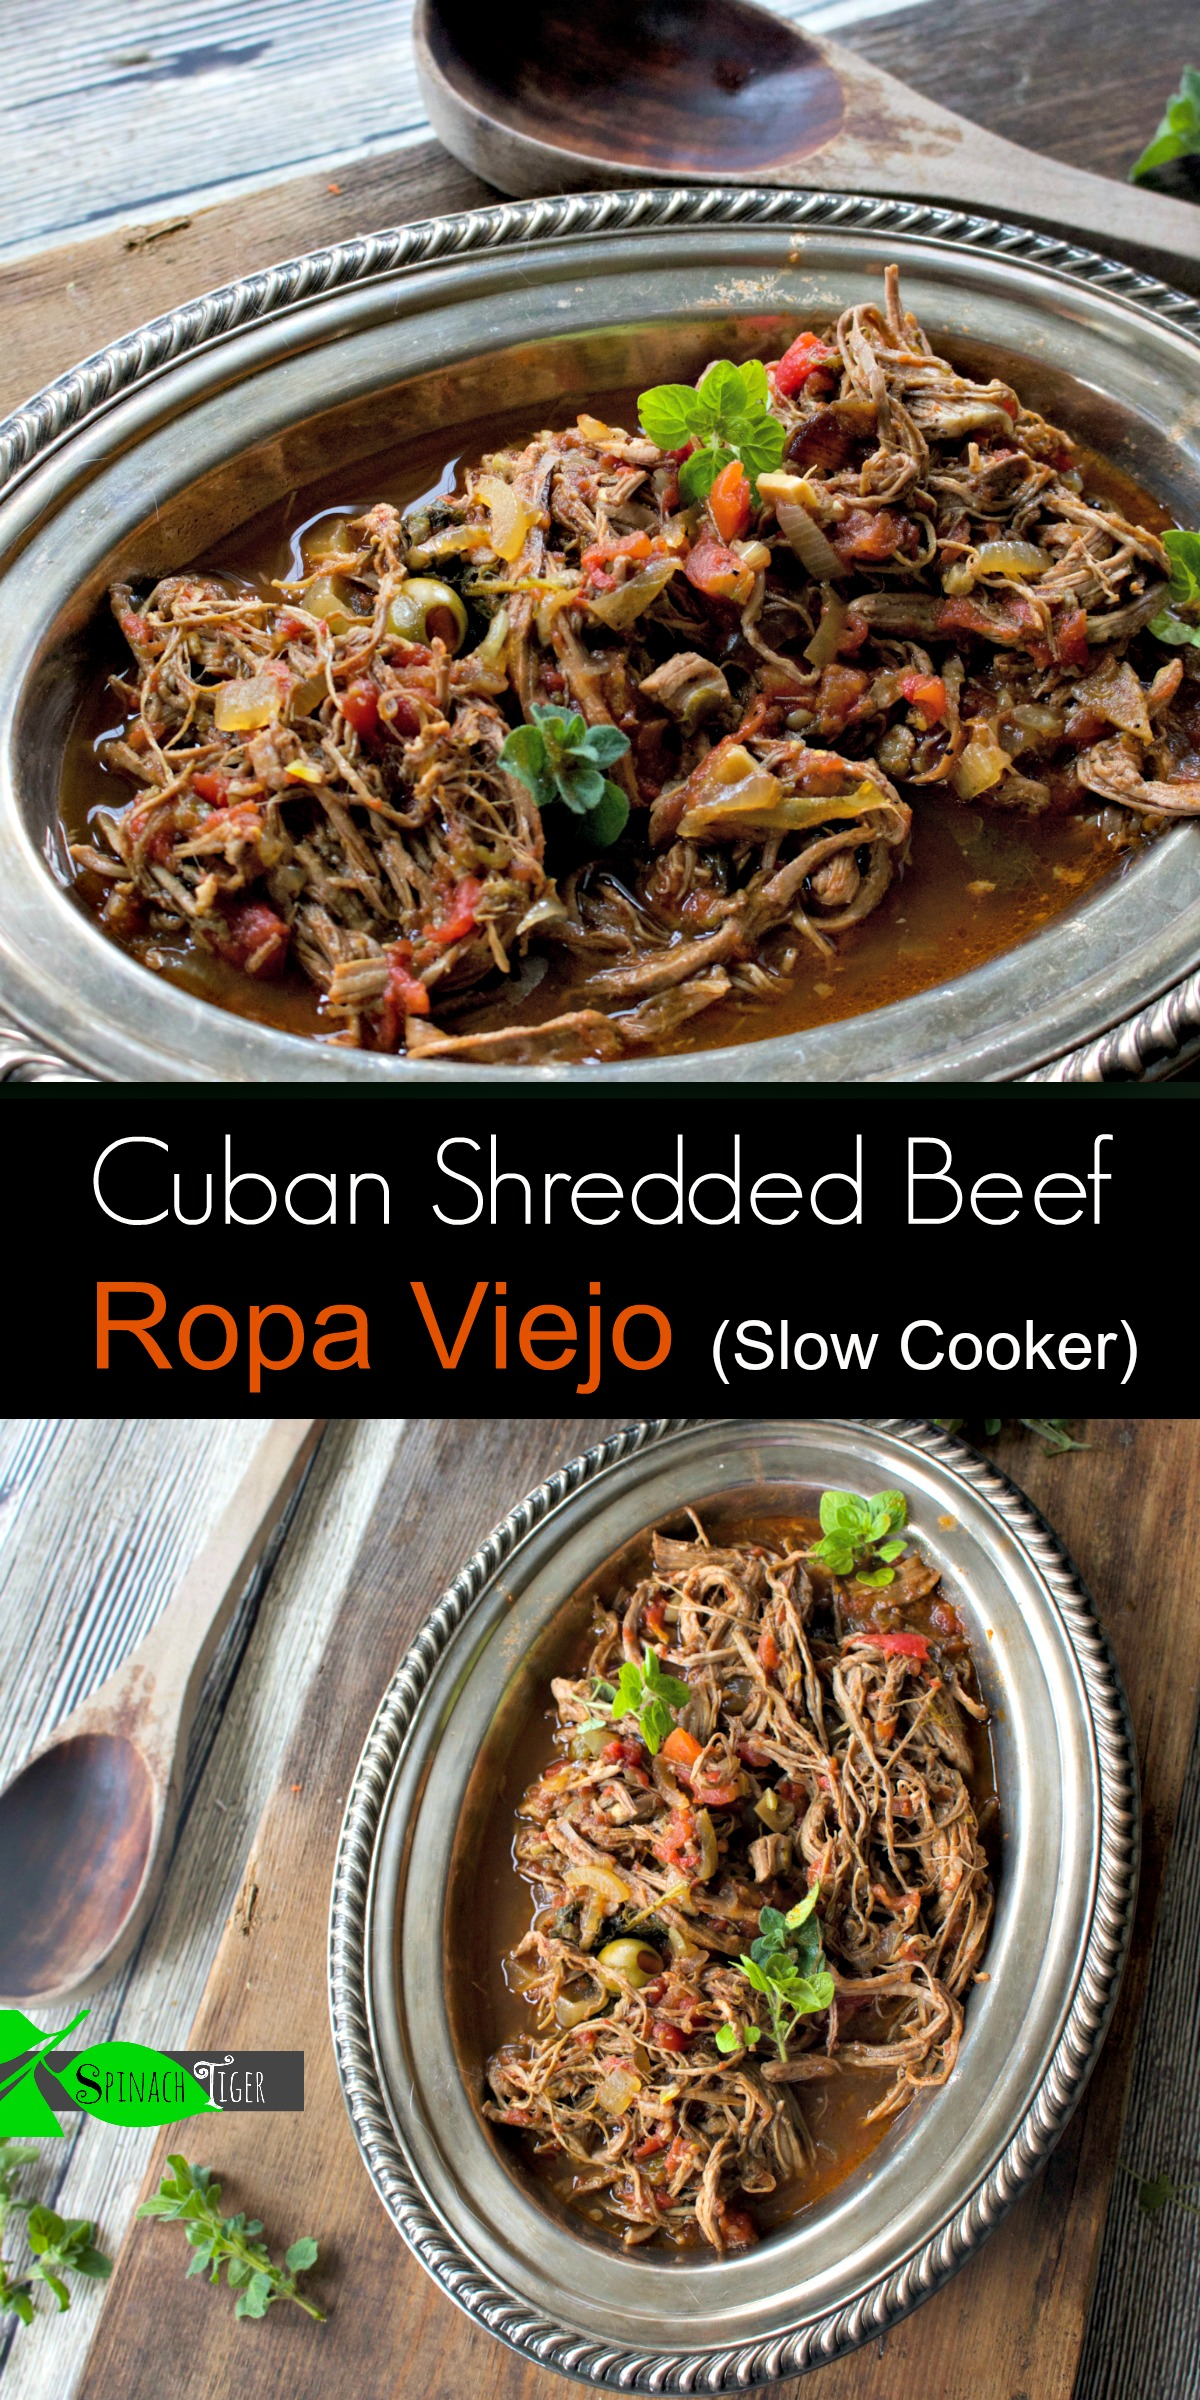 Make Ropa Viejo, Cuban Shredded Beef in slow cooker from Spinach Tiger